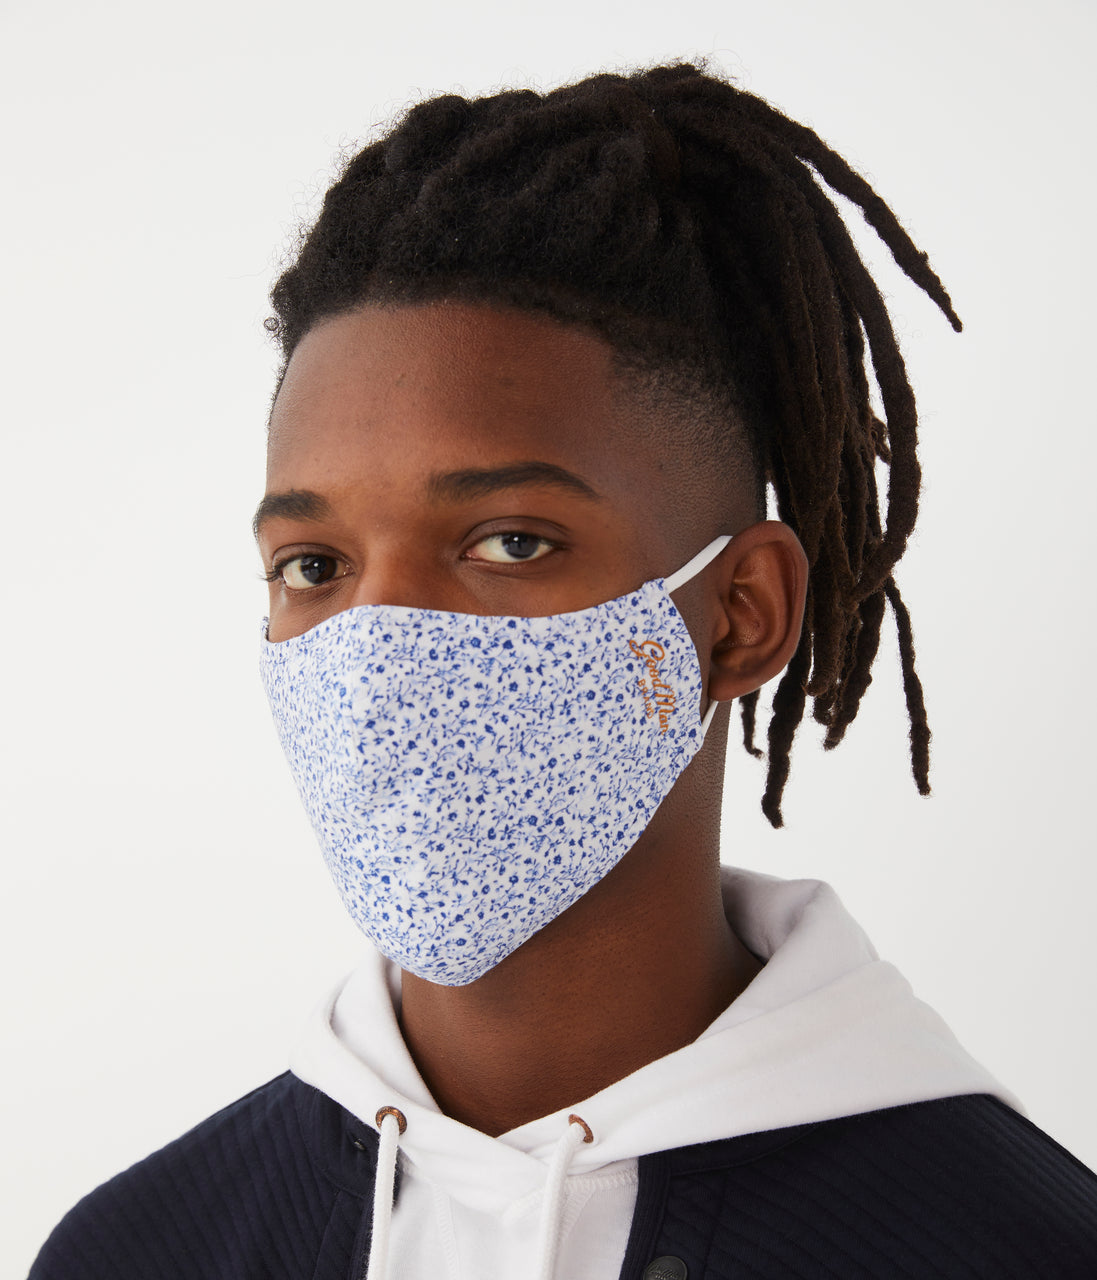 MVP Mask in Premium Italian Cotton - White Micro Daisy - Good Man Brand - MVP Mask in Premium Italian Cotton - White Micro Daisy